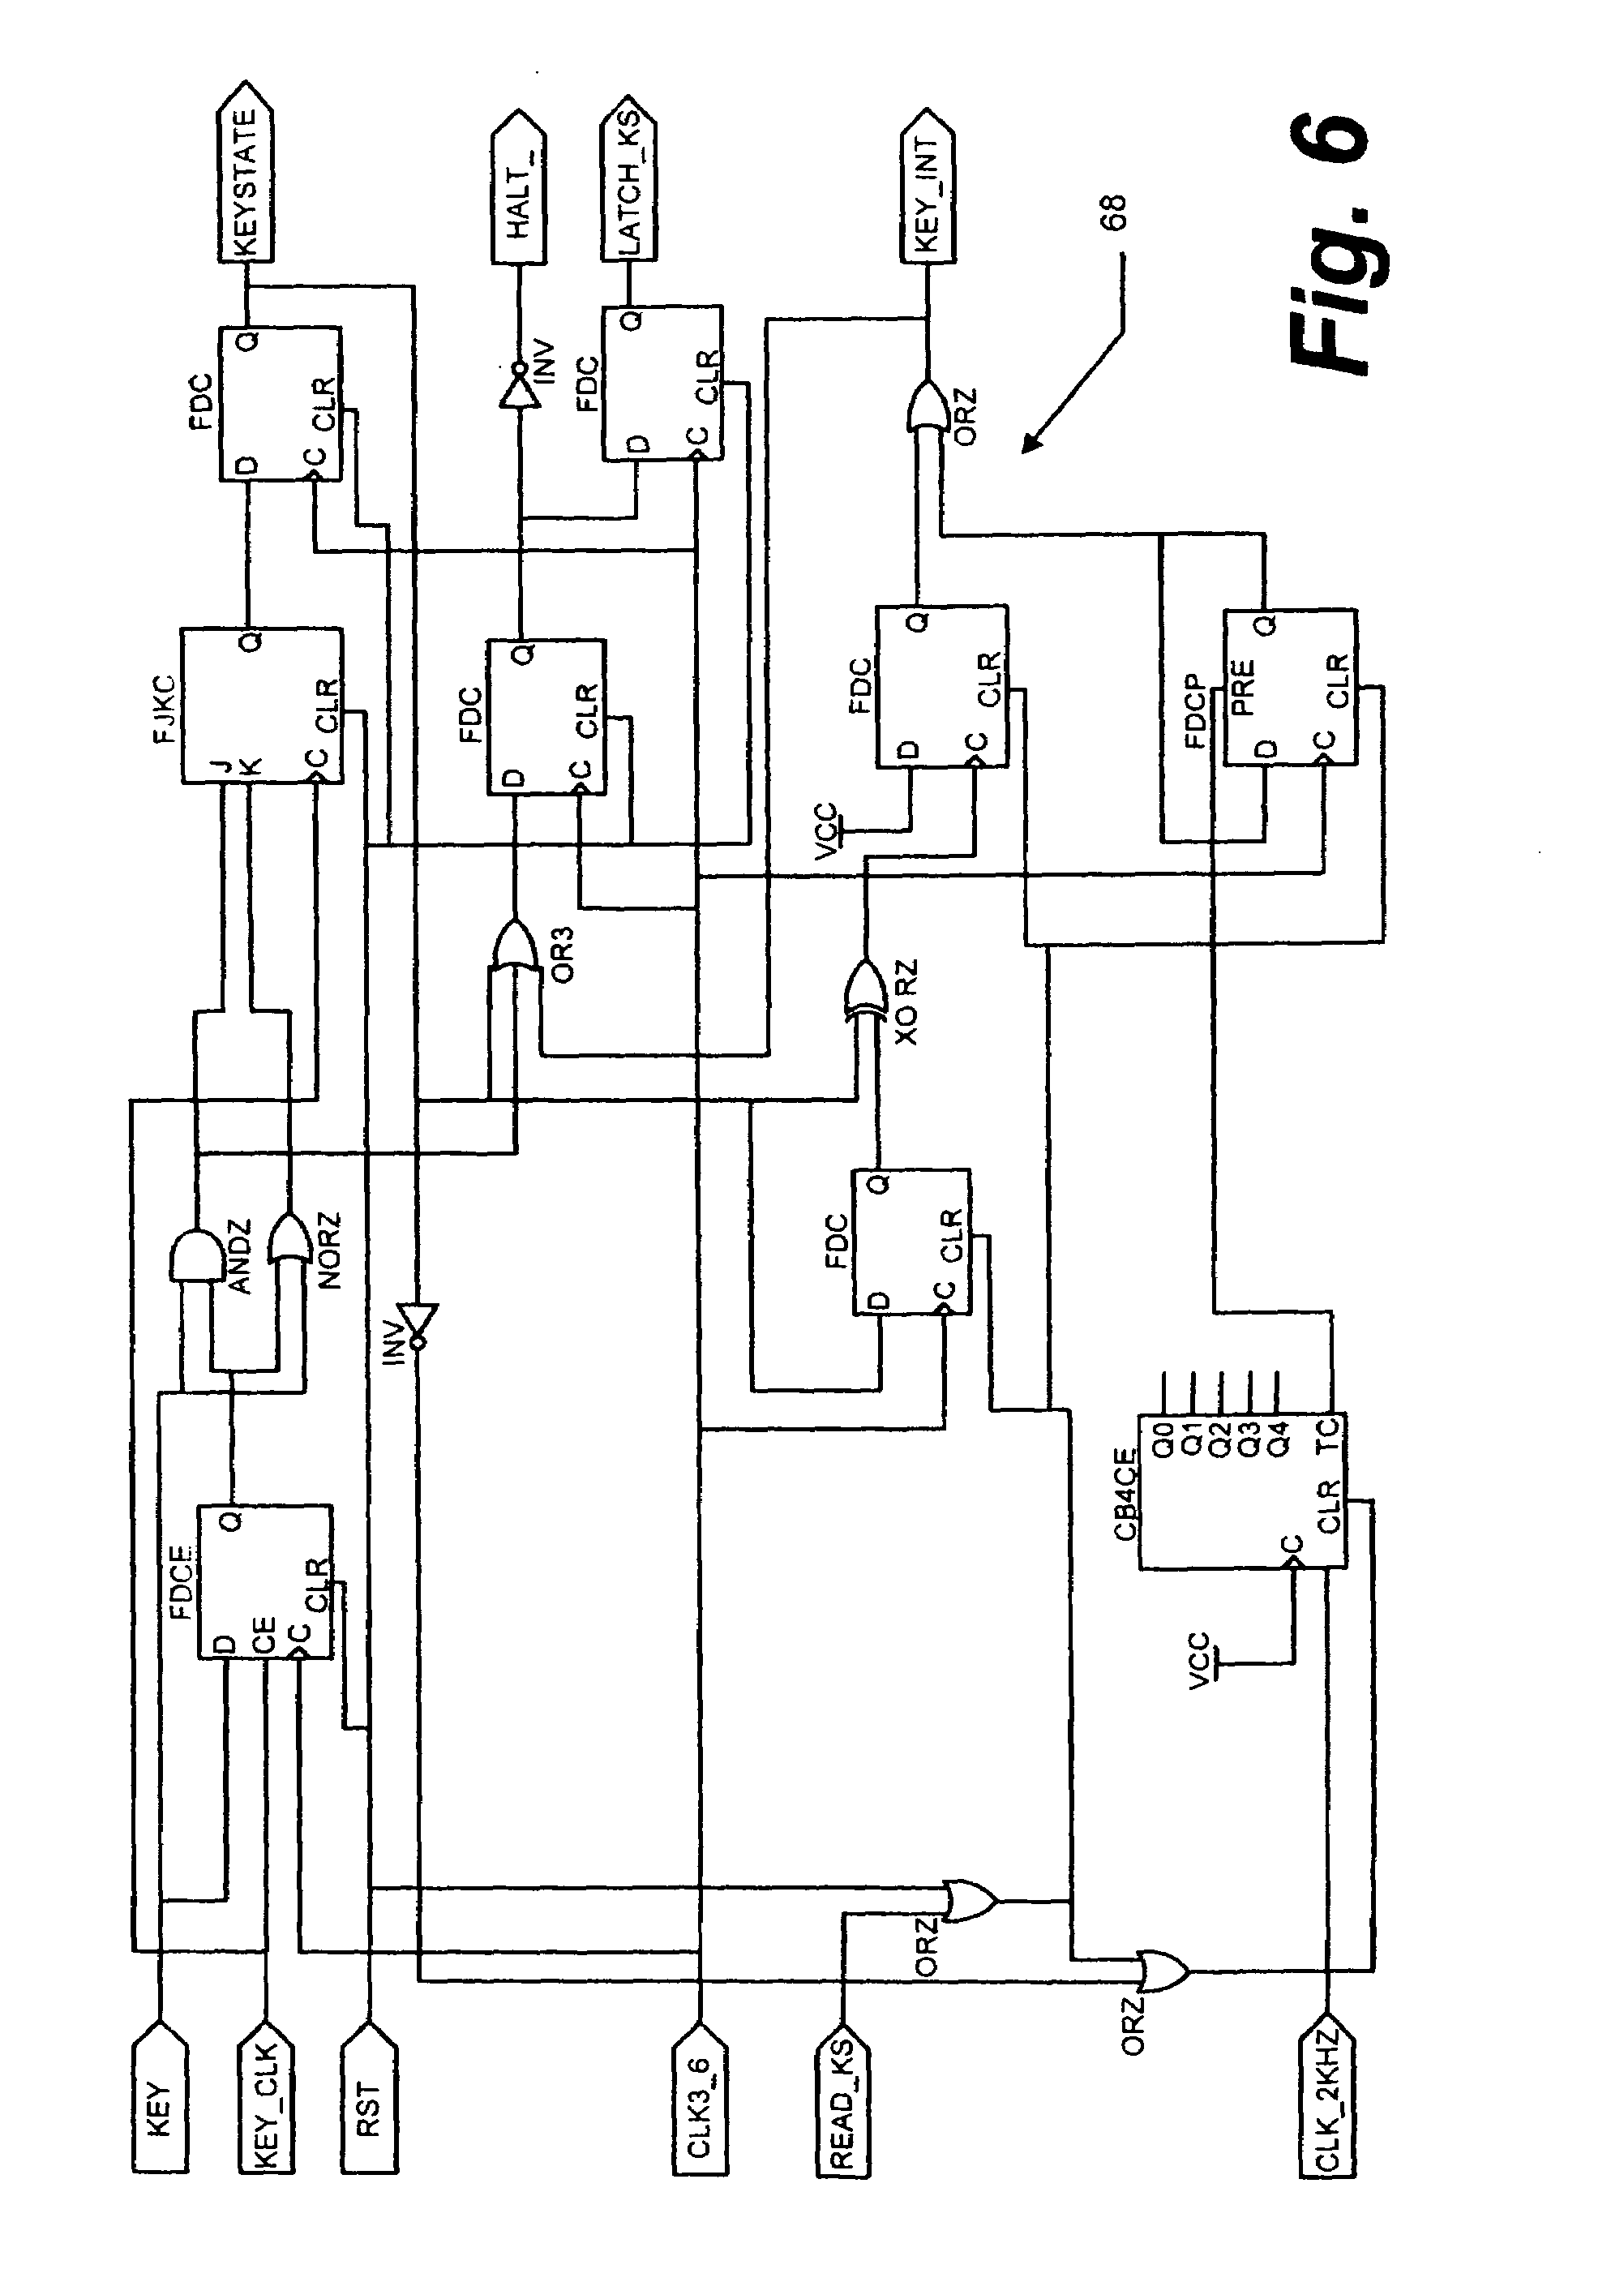 Patent Us7218250 Method And Apparatus For Keyboard Control With Debouncing Circuit Drawing